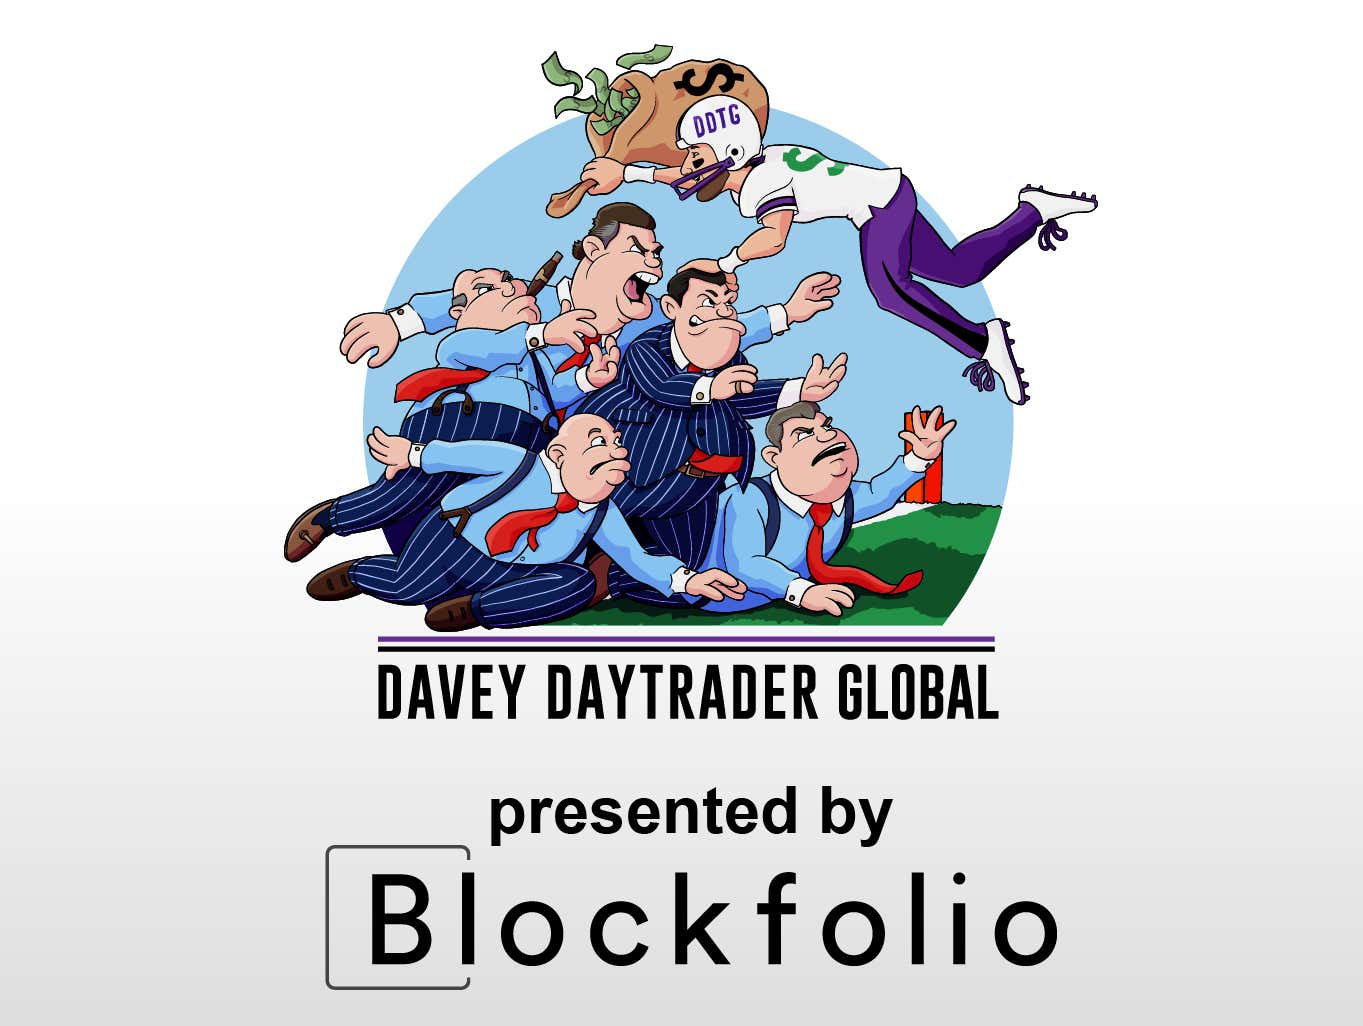 Davey Day Trader presented by Blockfolio - May 13, 2021